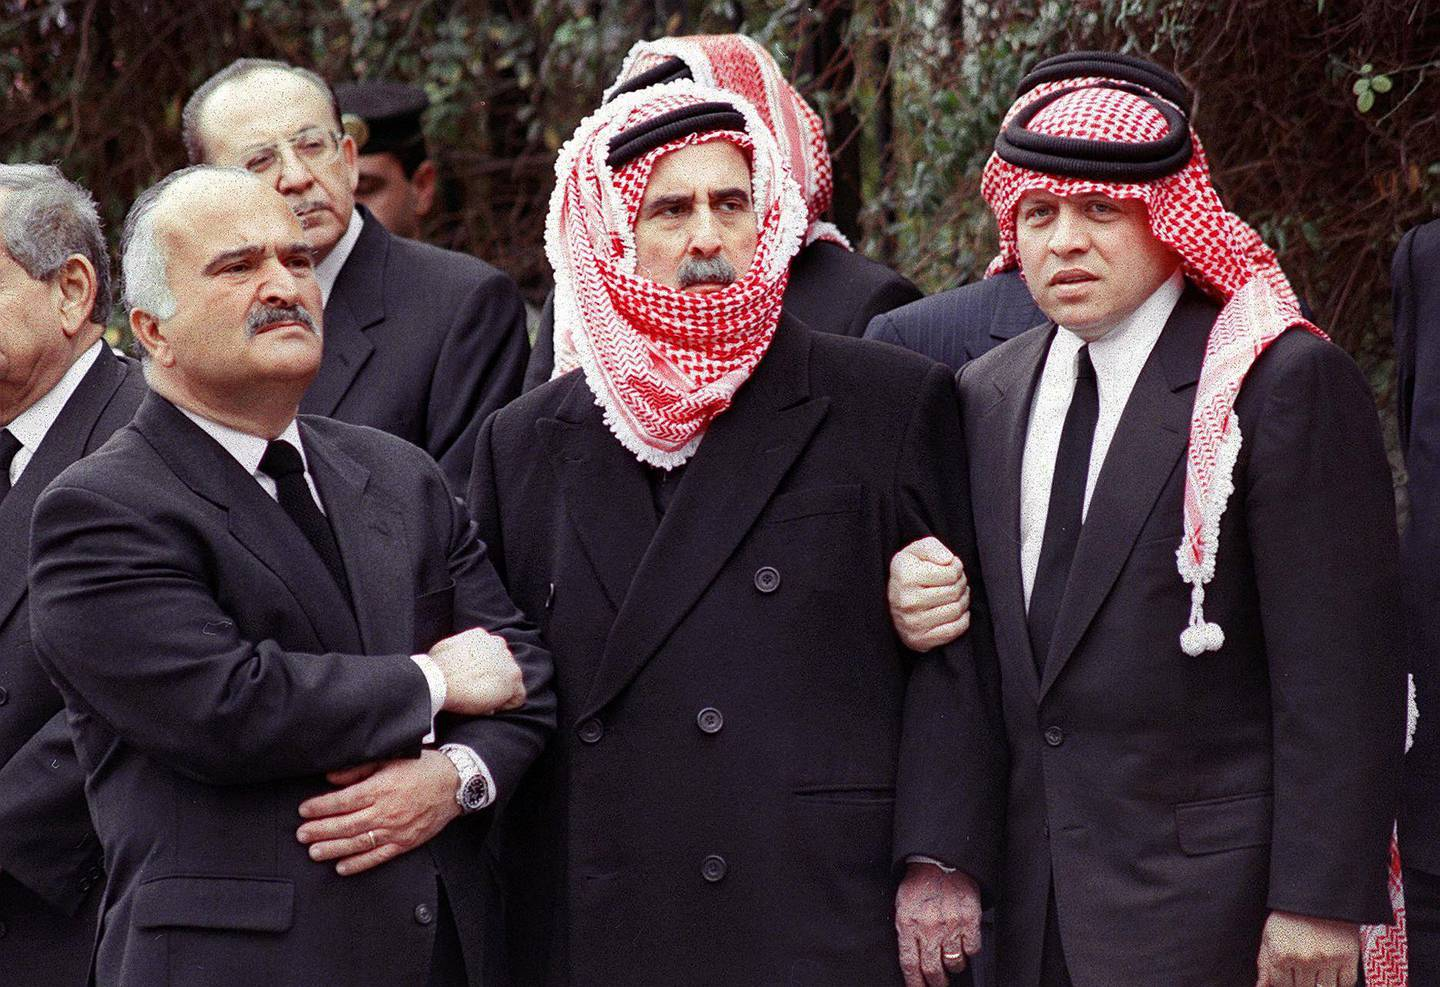 Jordanian King Abdallah (R) stands with his uncles Prince Mohammad (C) and Prince Hassan during the funeral procession of his father, King Hussien, who was buried 08 February in Amman. King Hussein died 07 February at the age of 63 after losing his seven-month-long battle against cancer. (Photo by KHALIL MAZRAAWI / AFP)